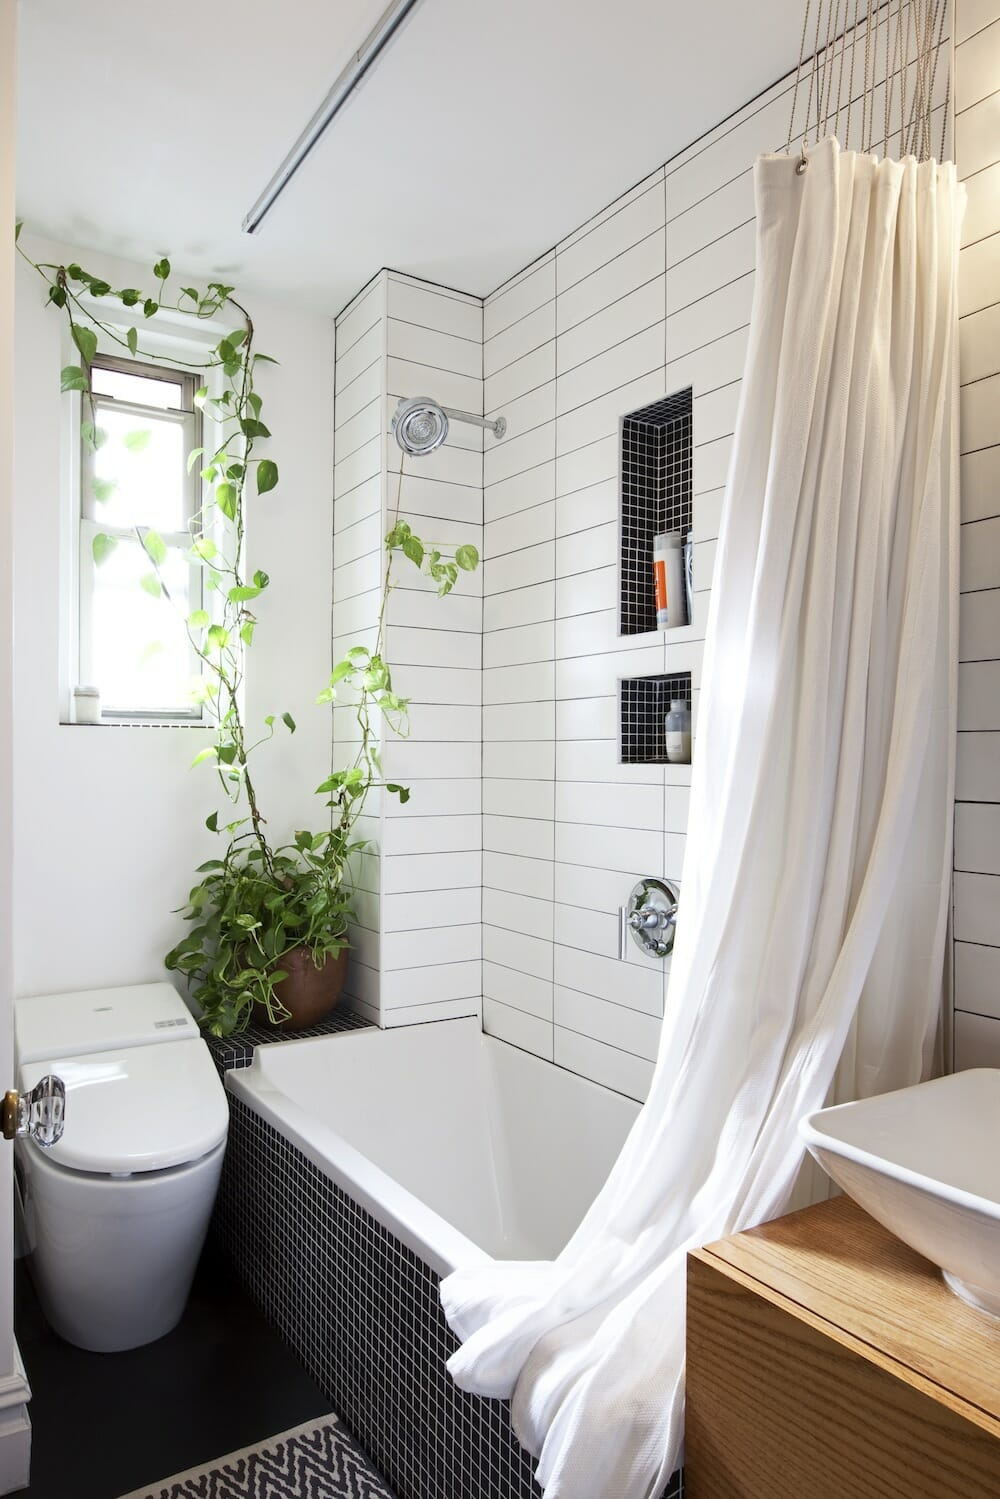 This black and white bathroom features The shower-bath wall features long white tiles offset with a darker grout